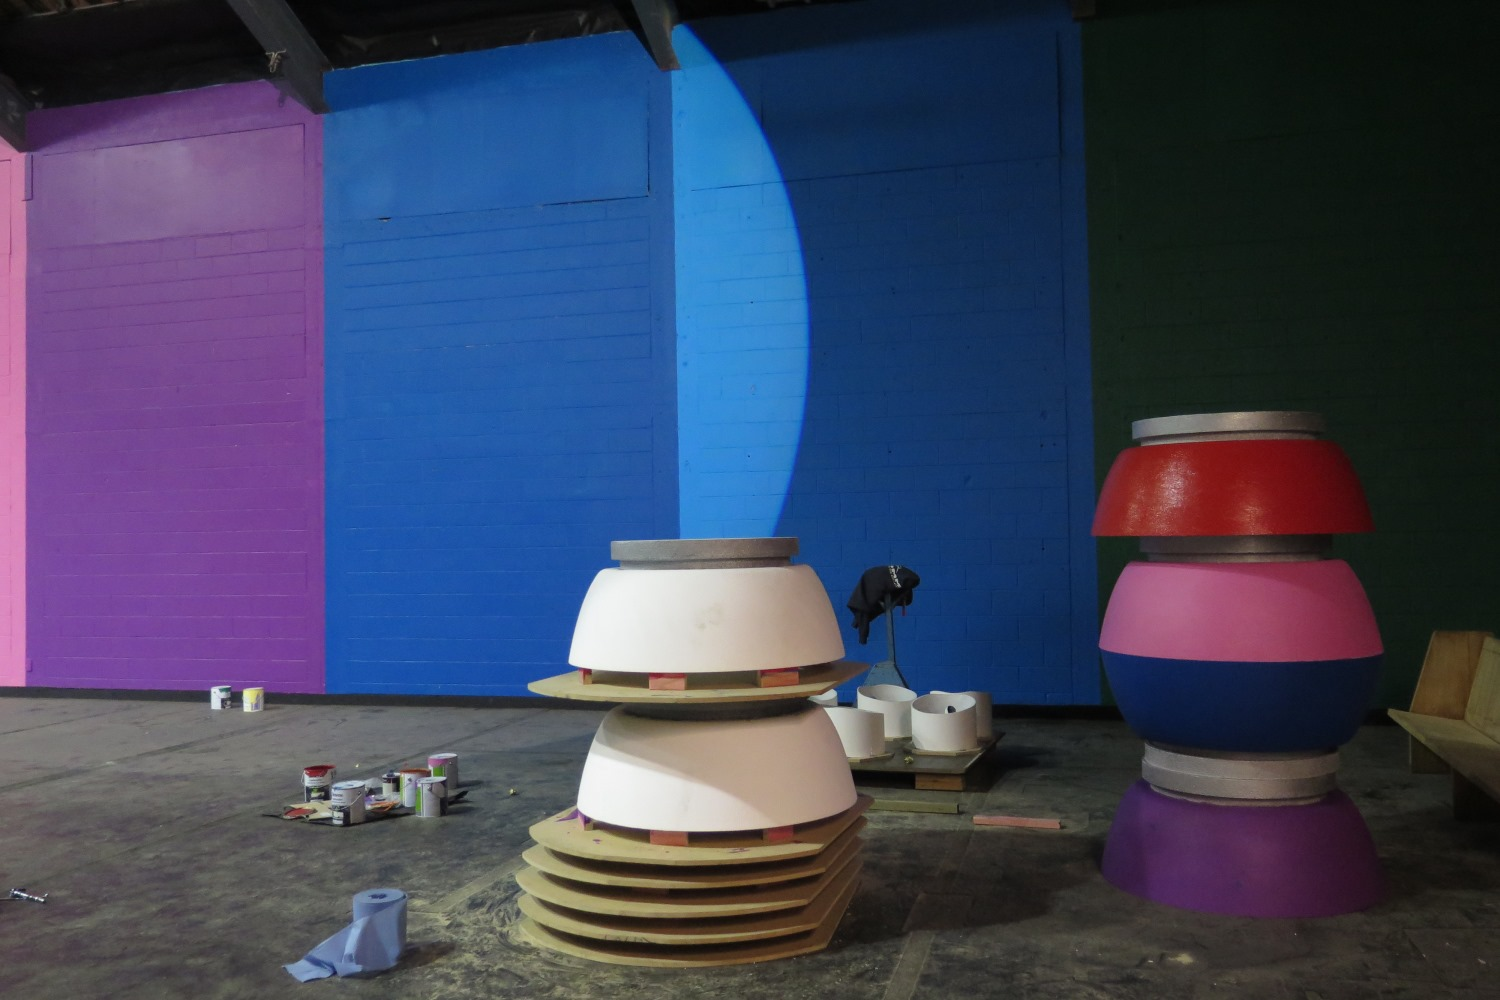 Giant spray can tops being painted, Spectrum 2015 Christchurch